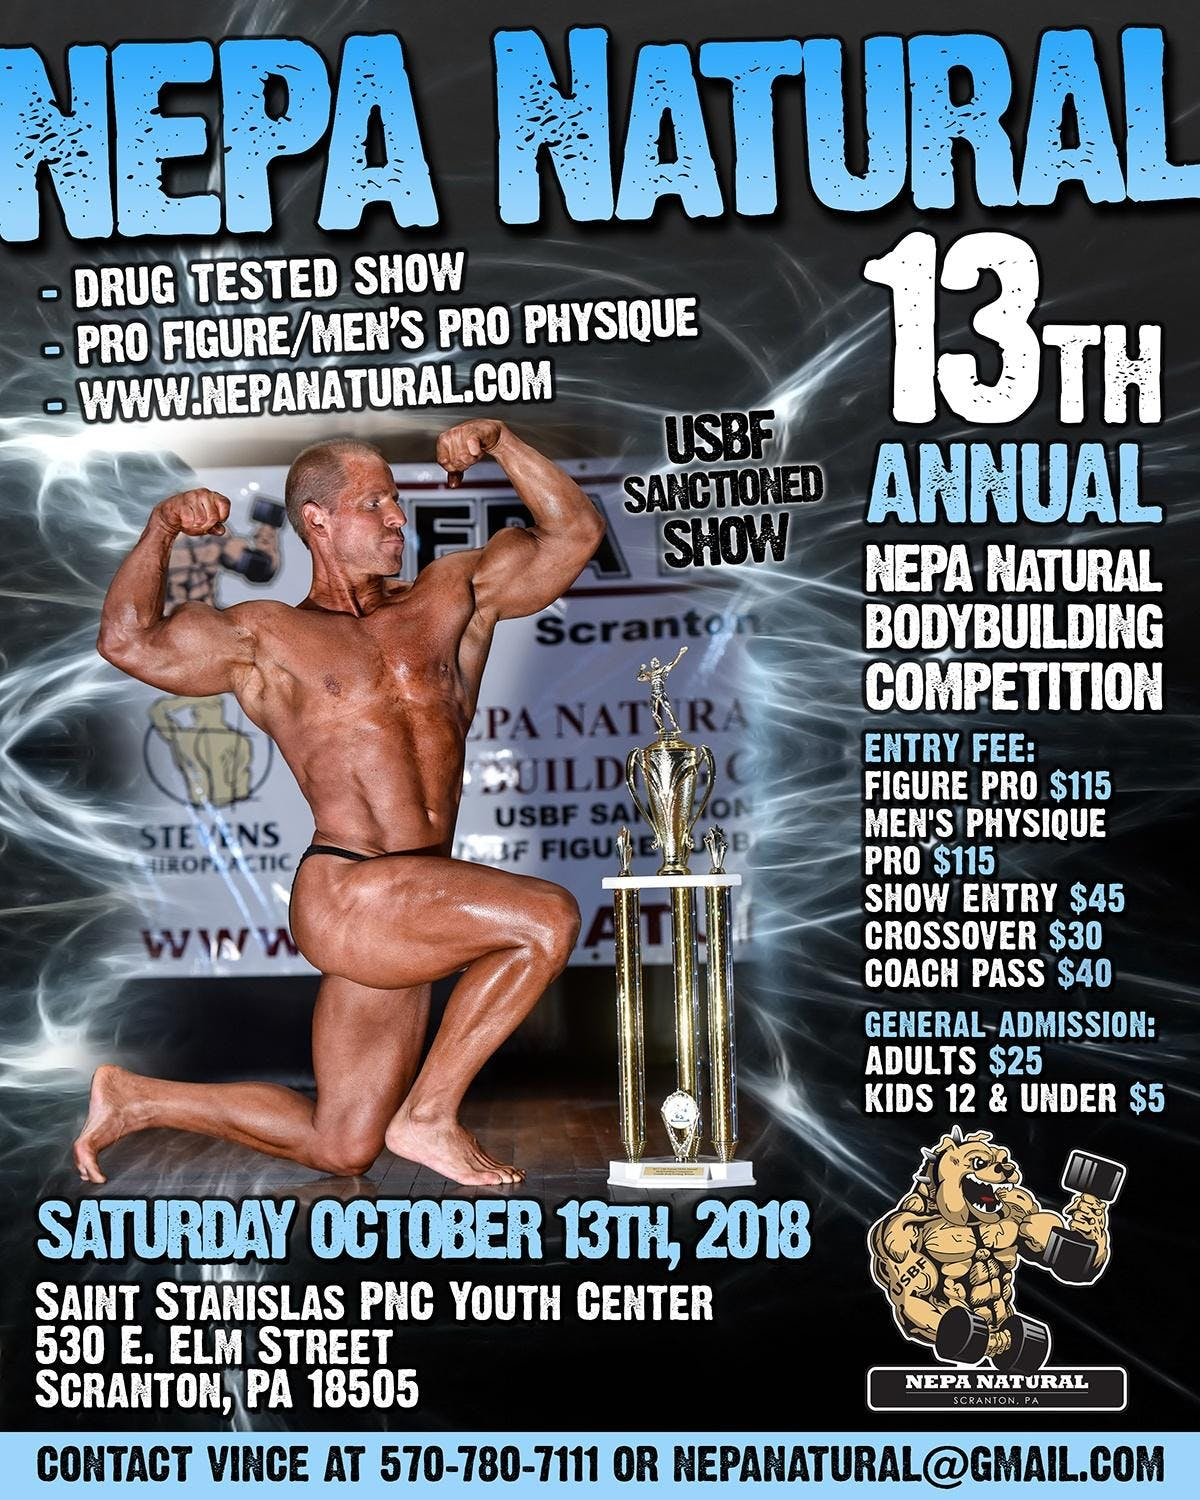 13th Annual Nepa Natural Body Building Competition 13 Oct 2018